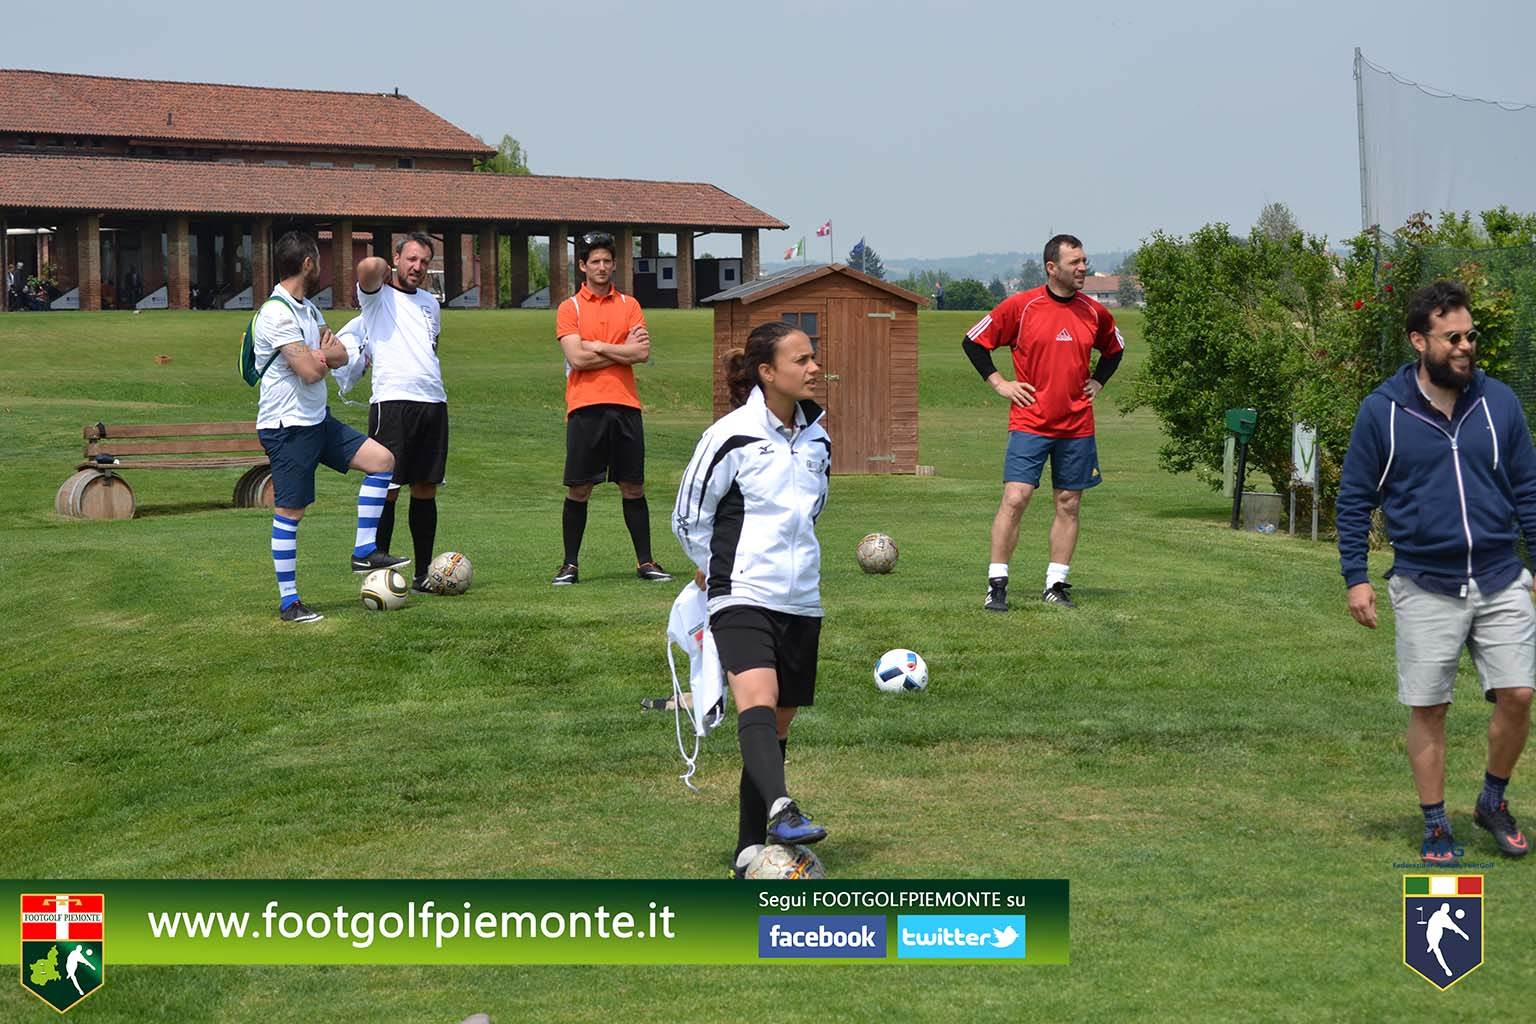 FOTO 9 Regions' Cup Footgolf Piemonte 2016 Golf Città di Asti (At) 30apr16-39